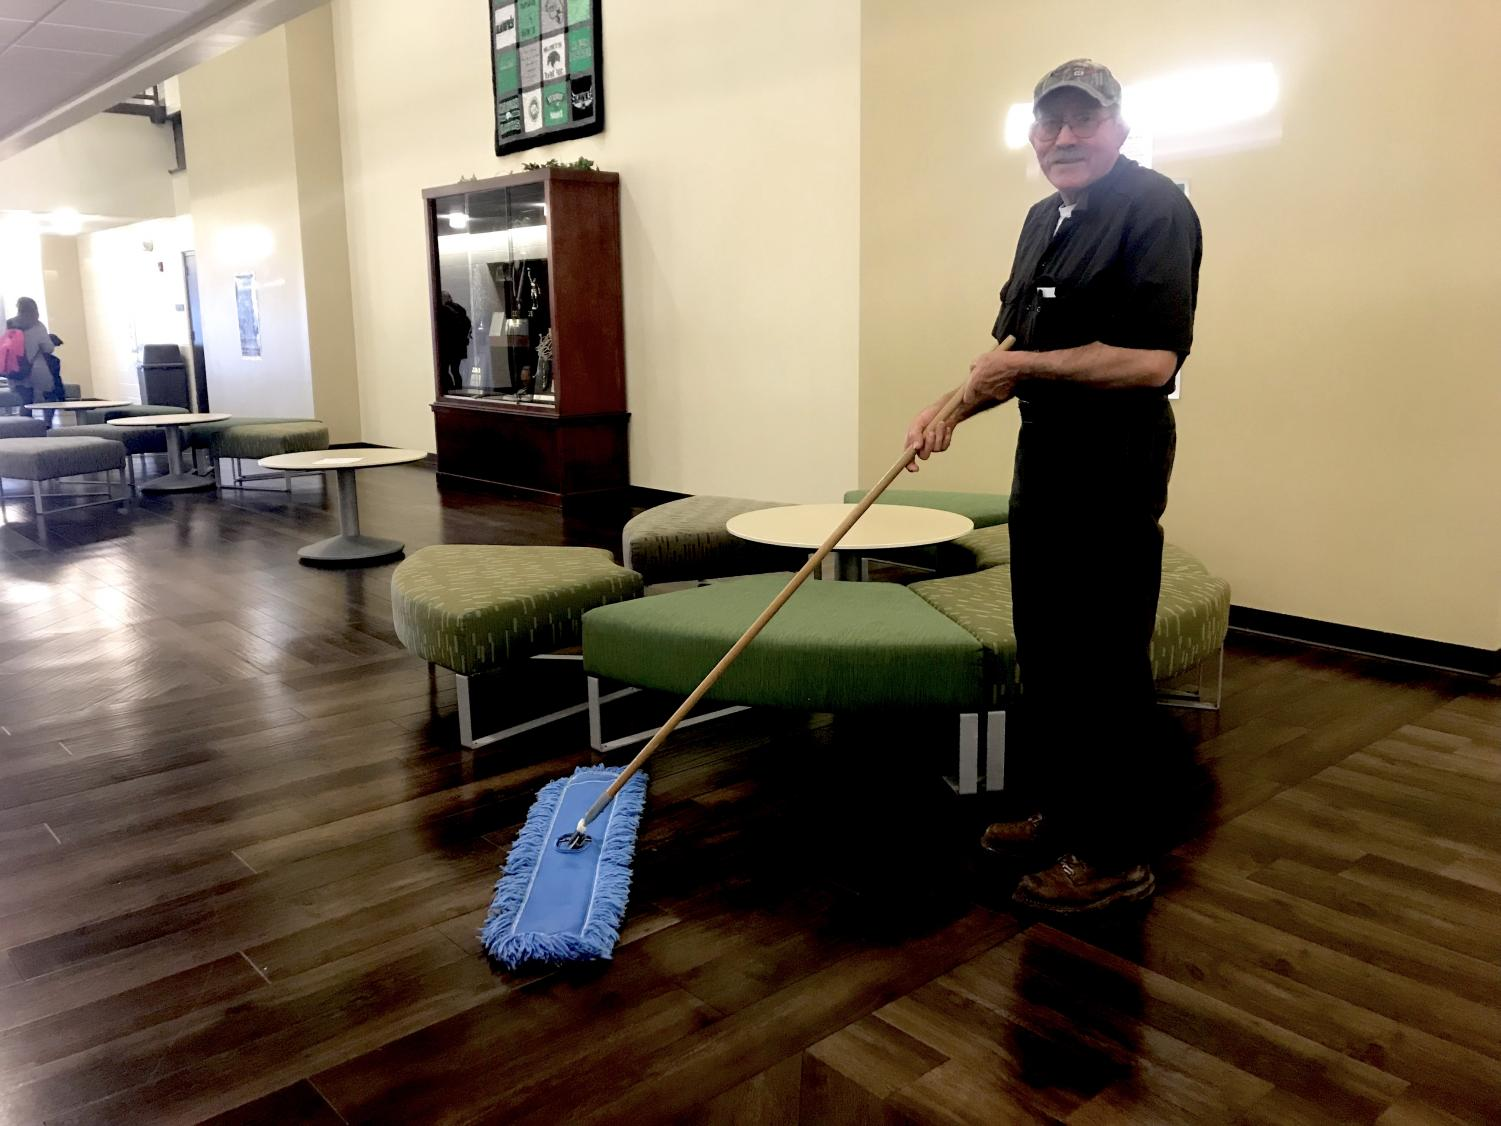 Doug Powers sweeps the great hall as one of Meridian's custodians after working the morning at his farm. Powers started working at Meridian seven years ago, and he has impacted a great amount of people throughout those years. Power's daughter, Victoria McDonald, said,